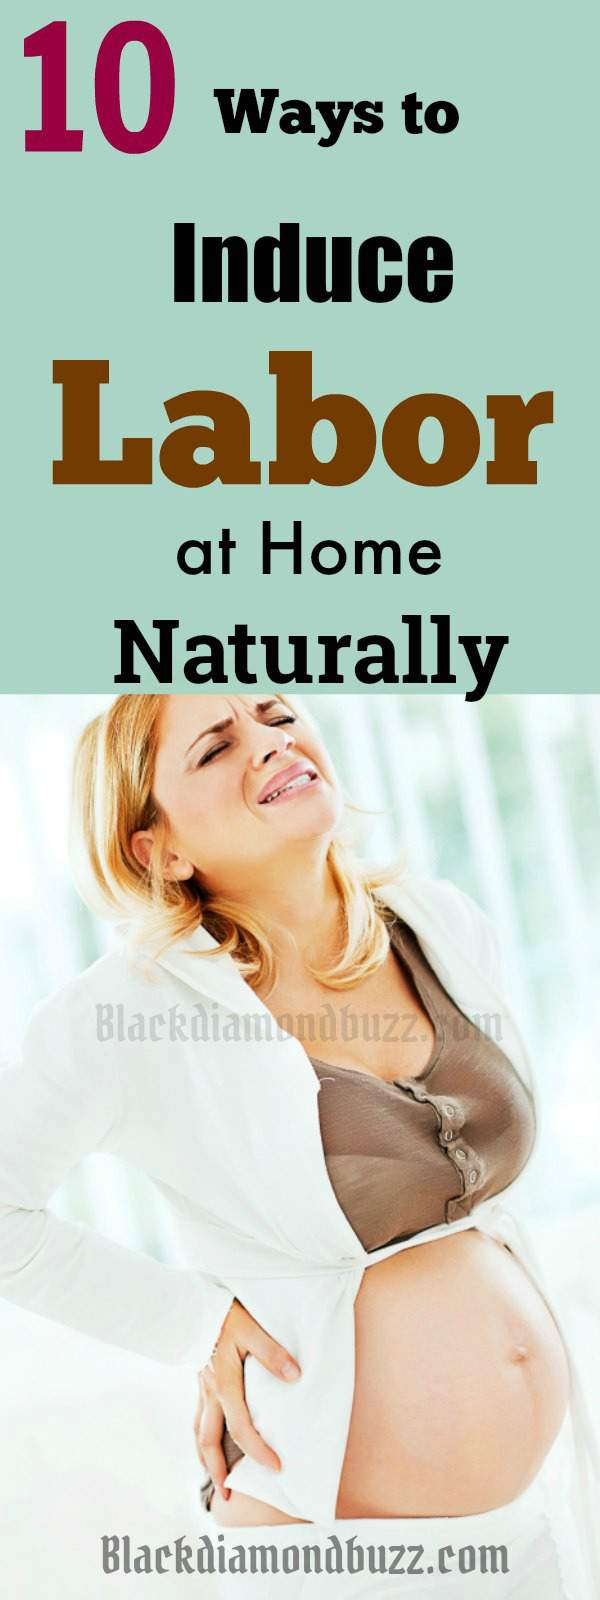 How to Induce Labor at Home Naturally - 10 Fastest and Easy Ways